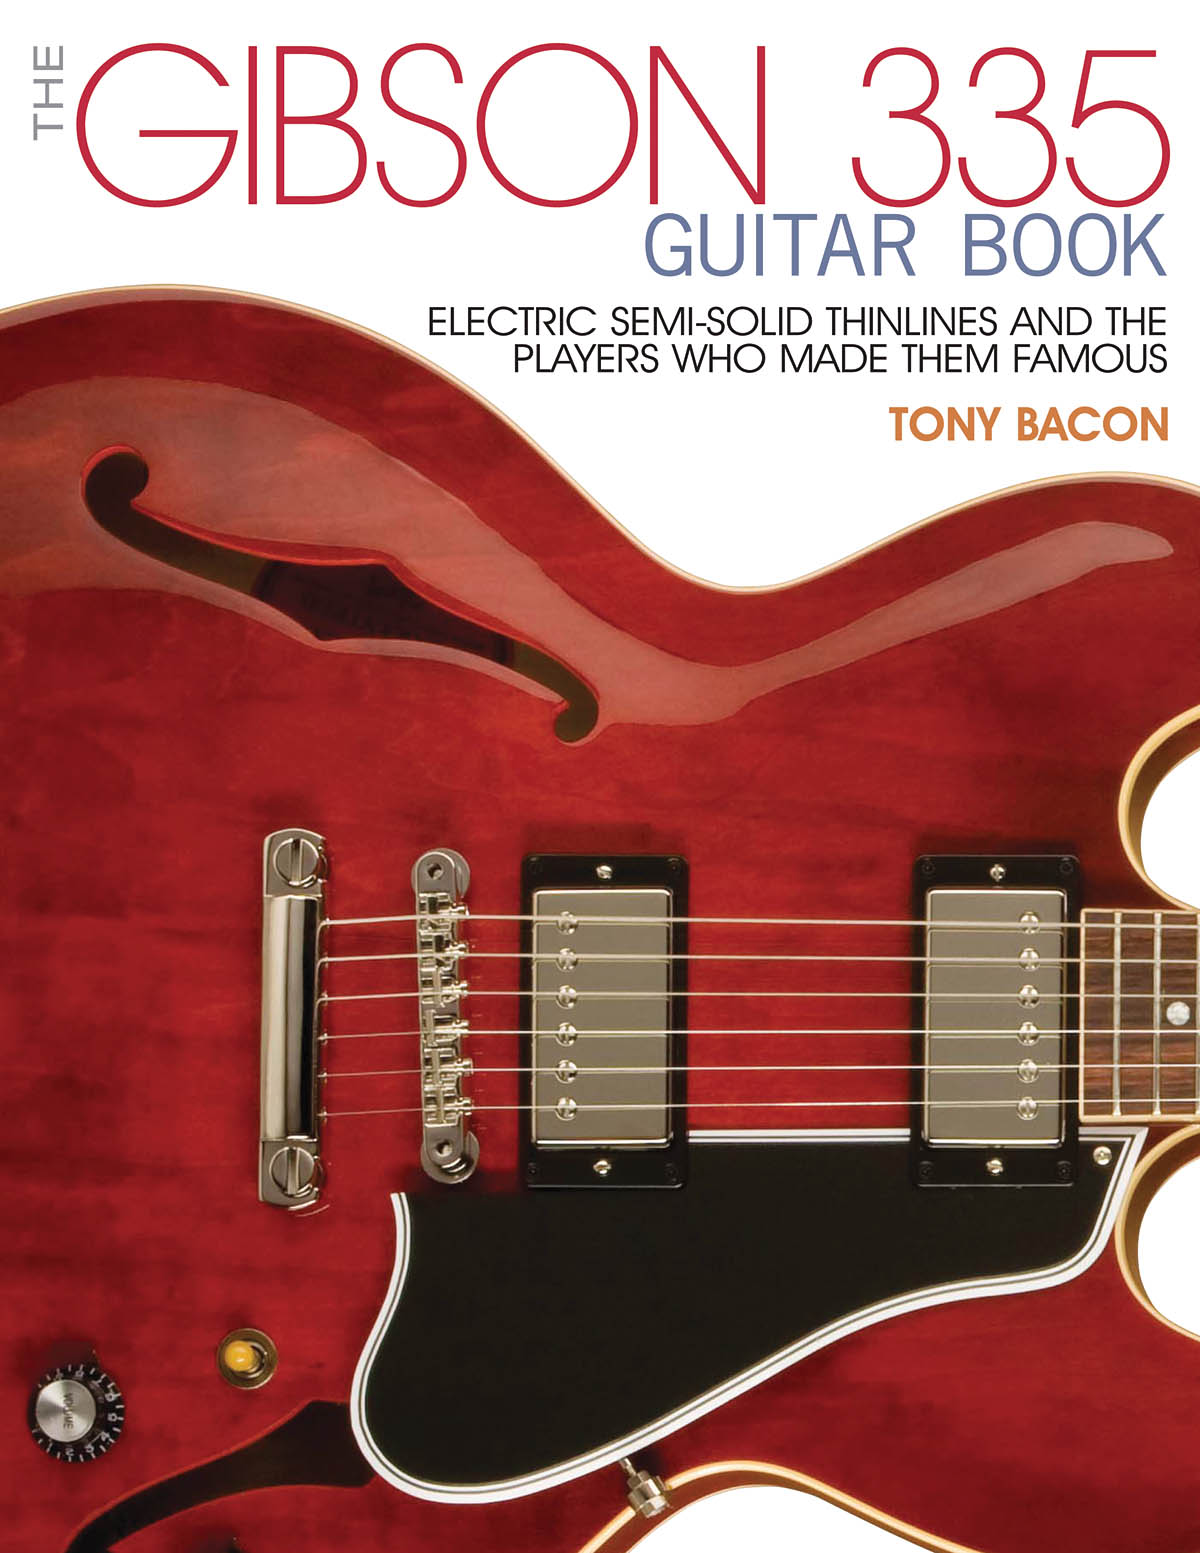 The Gibson 335 Guitar Book: Reference Books: Reference